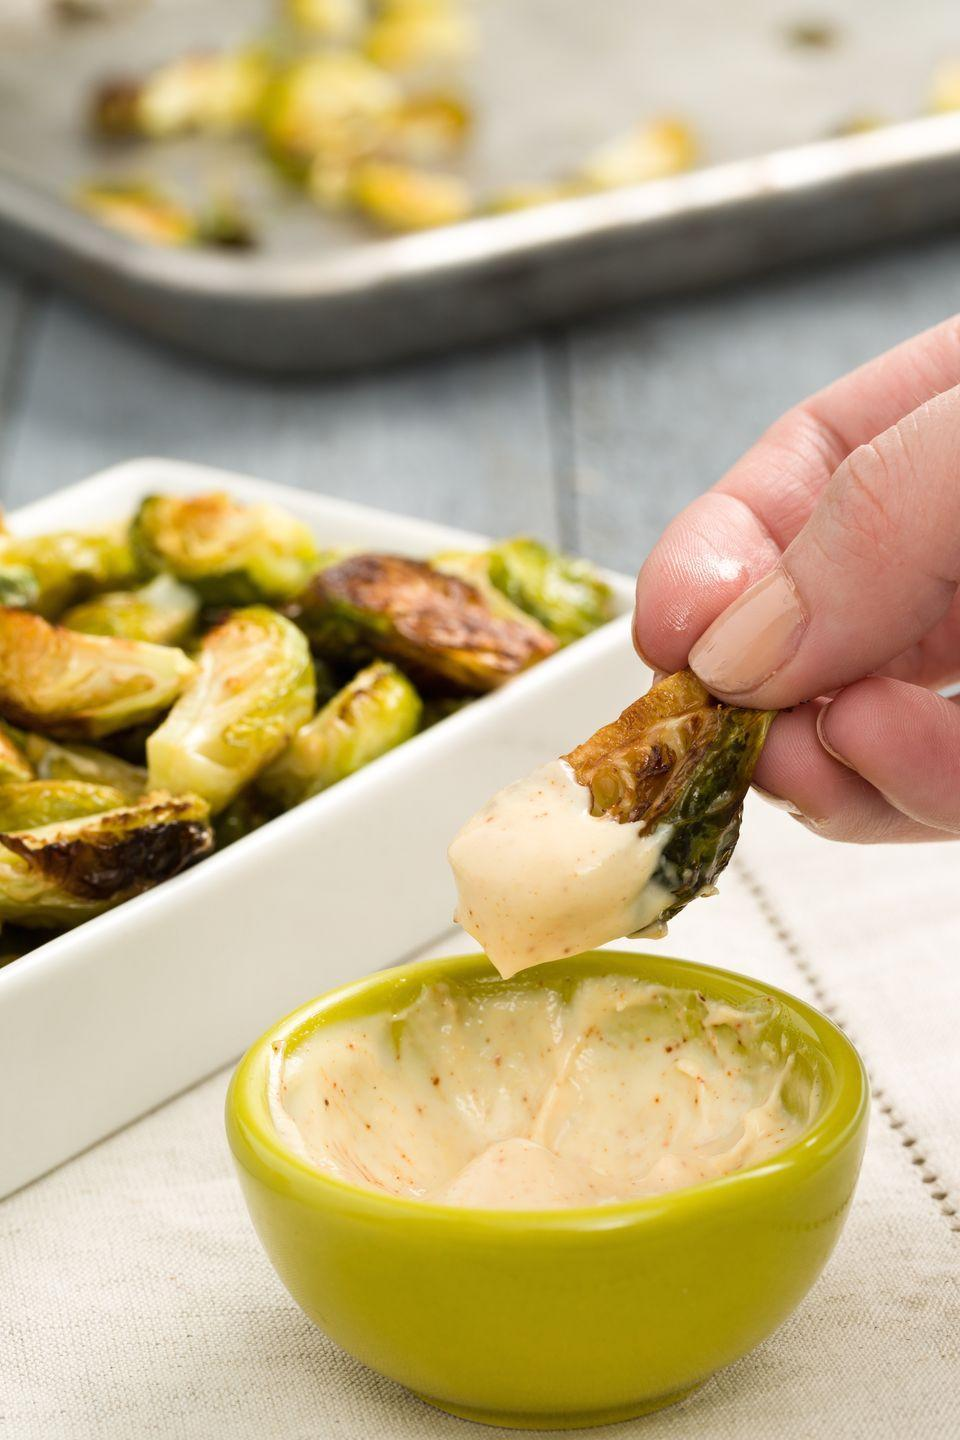 "<p>If you're making brussels sprouts as a dinner side dish, just make extra for a dip-able app. Two-in-one FTW!</p><p>Get the recipe from <a href=""/holiday-recipes/thanksgiving/recipes/a44806/crispy-brussels-sprouts-with-spicy-aioli-recipe/"" data-ylk=""slk:Delish"" class=""link rapid-noclick-resp"">Delish</a>. </p>"